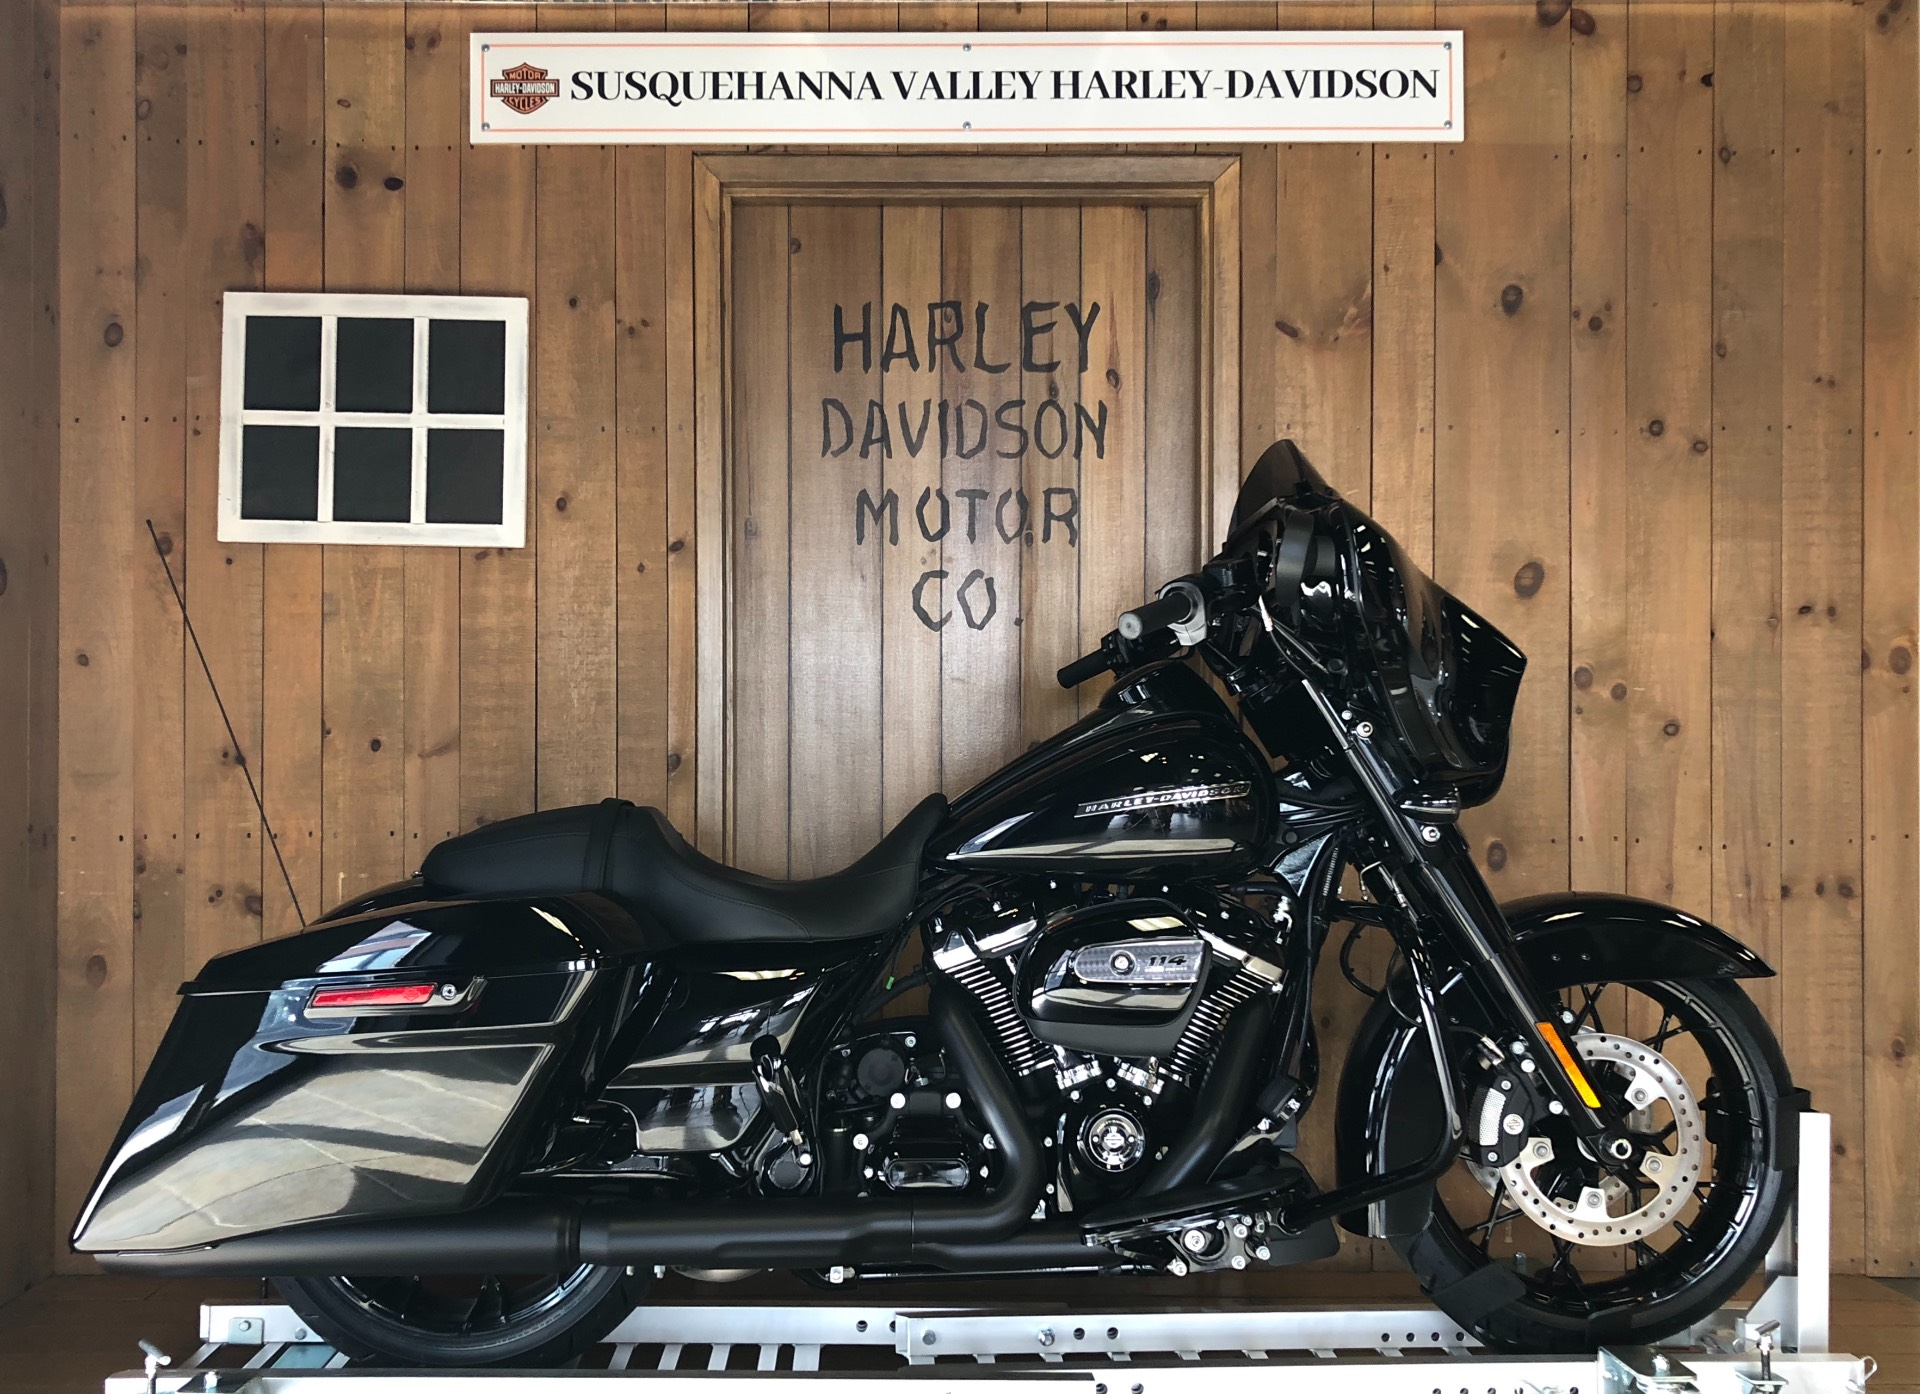 2020 Harley-Davidson Street Glide Special in Harrisburg, Pennsylvania - Photo 1